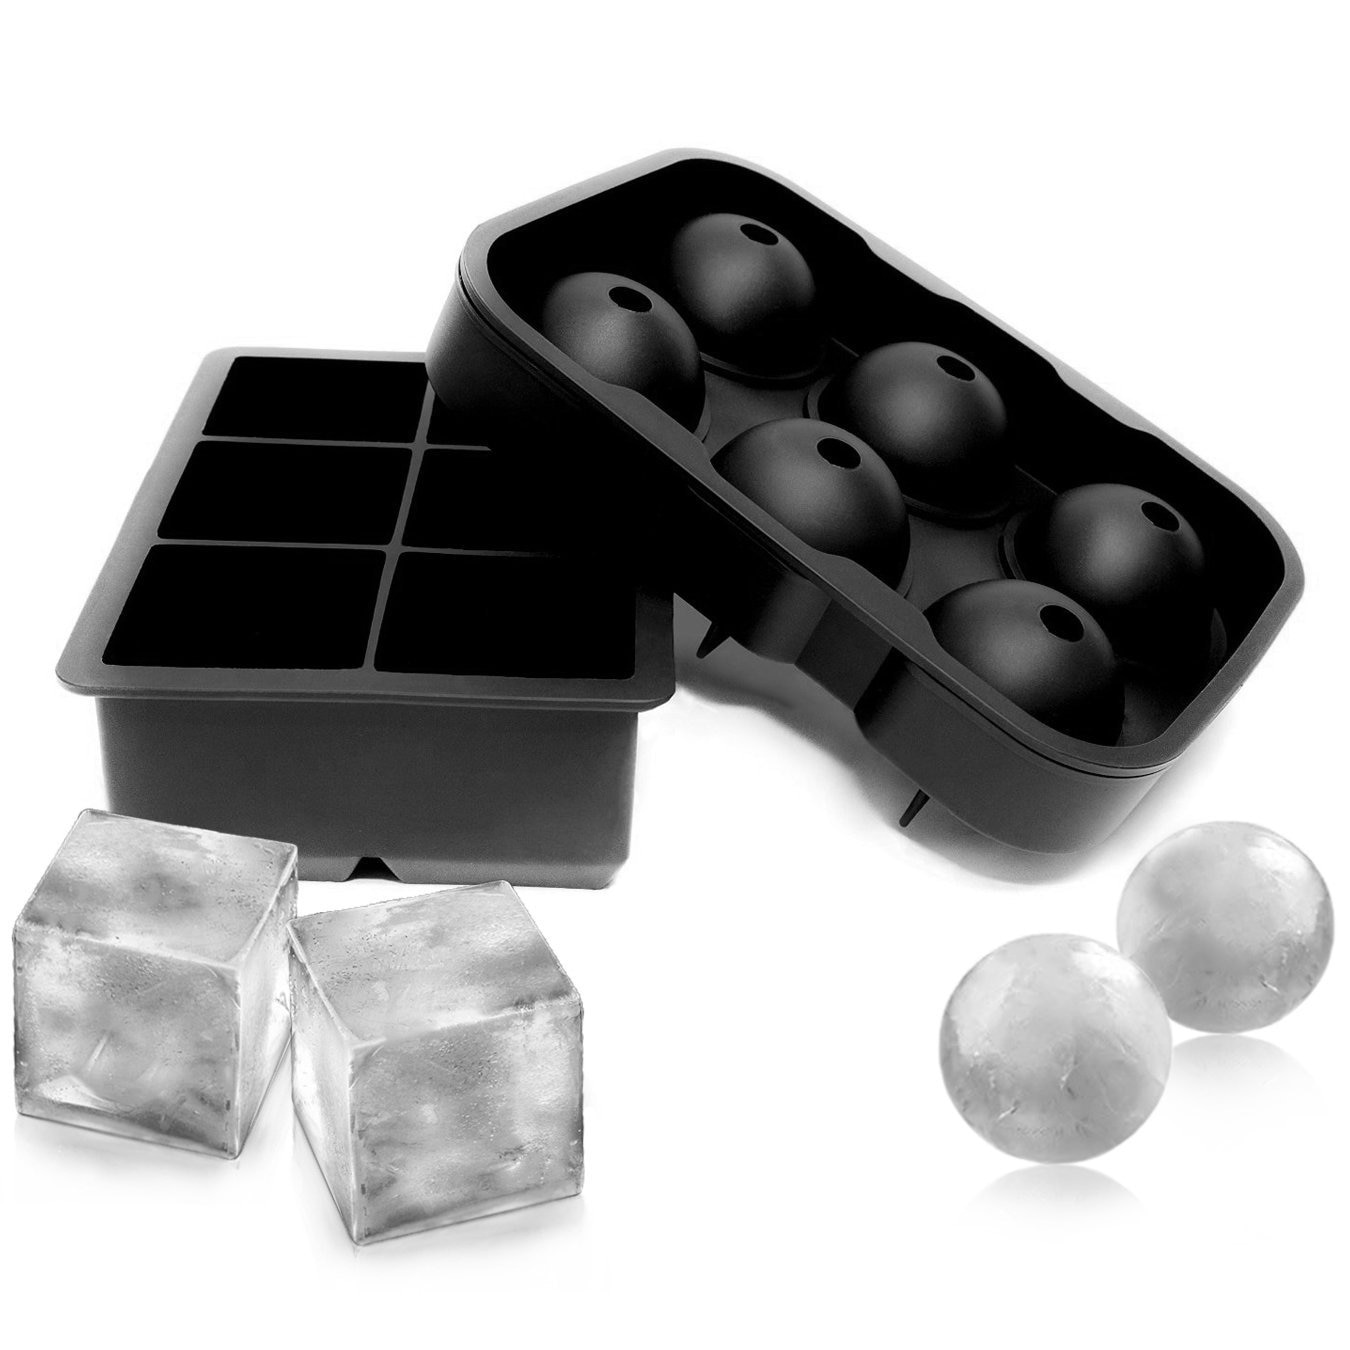 2PCS Frozen 6 Silicone Ice Ball 6 Square Ice Cube Trays Silicone Sphere Ice Mold Form Ball Maker Black TW-010 kitchen tools